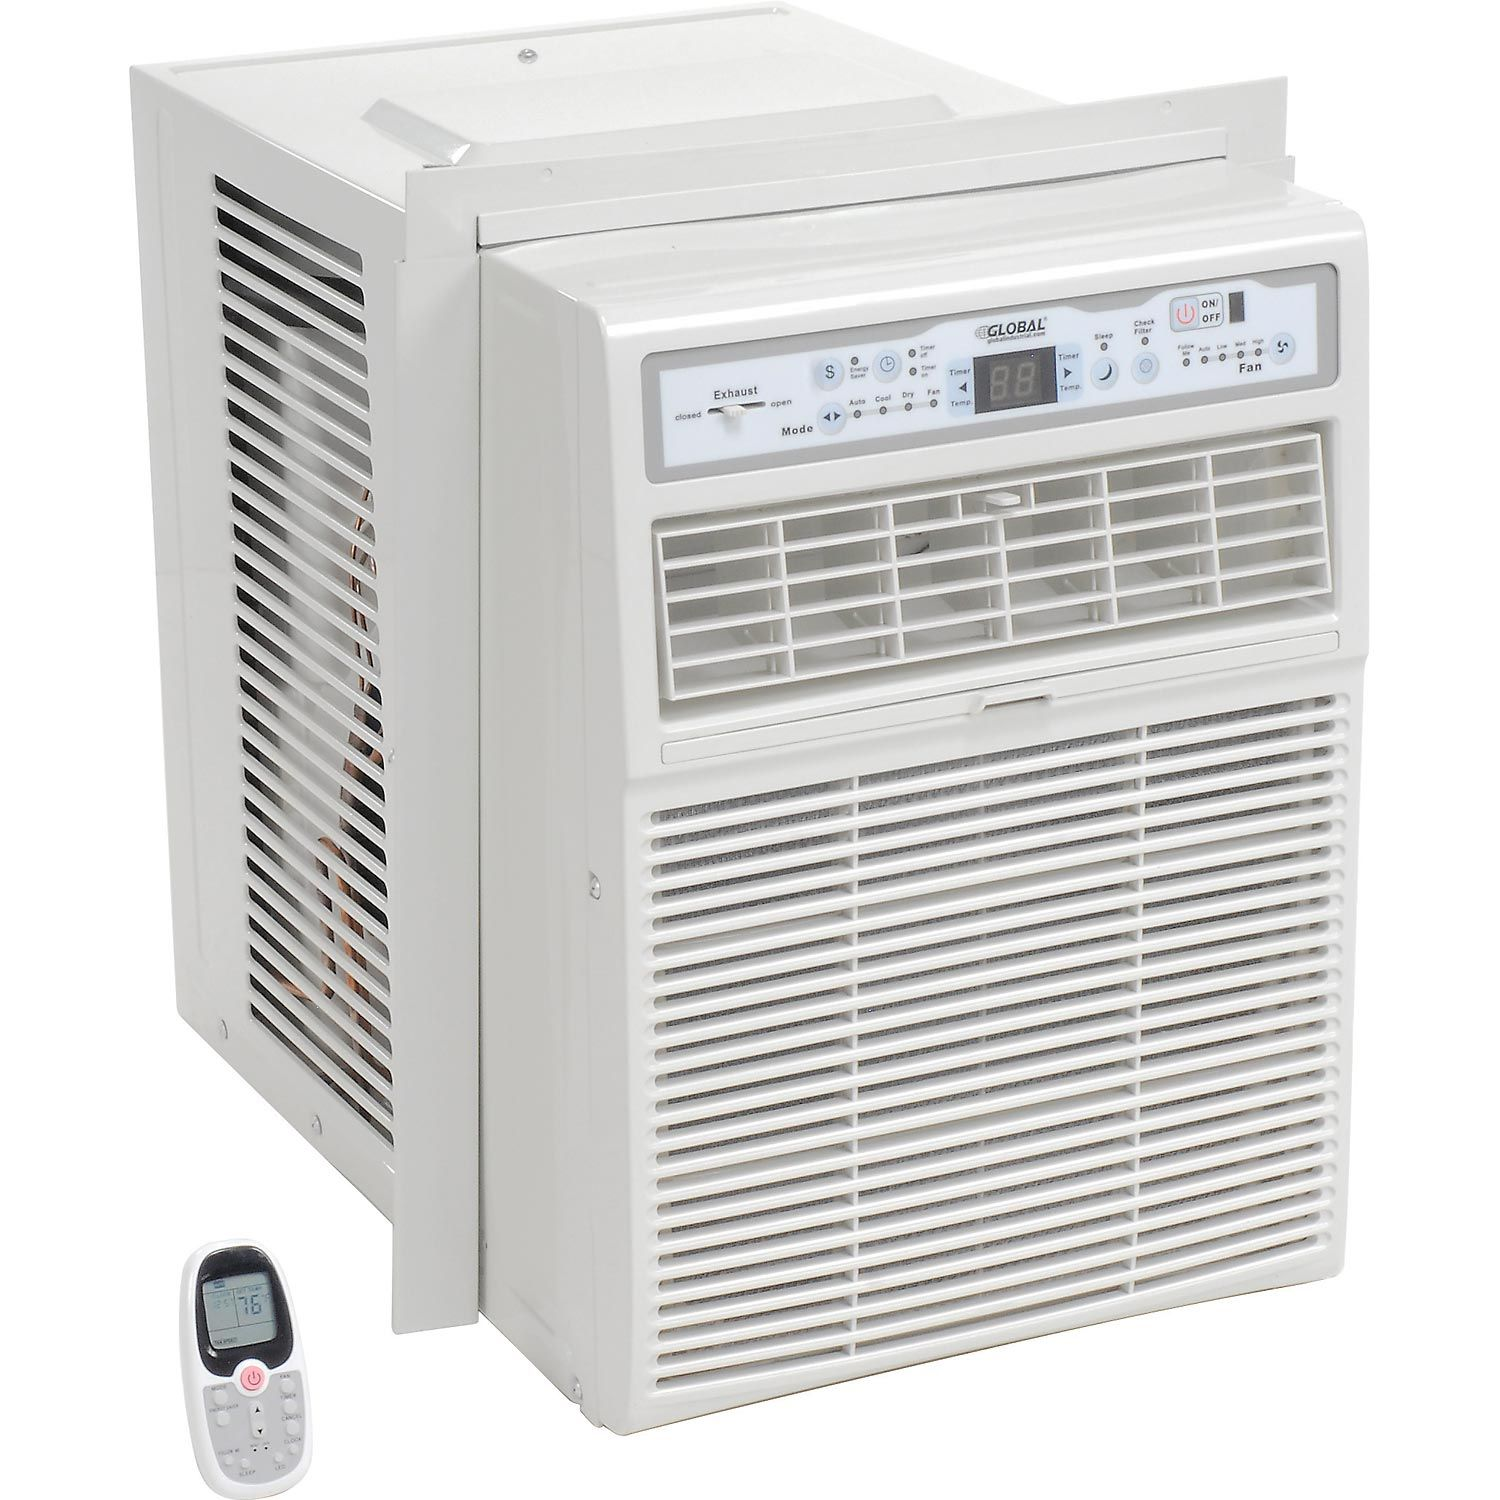 Air Conditioners | Window Air Conditioner | Casement Window Air Conditioner 10,000BTU Cool 115V | 292312 - GlobalIndustrial.com